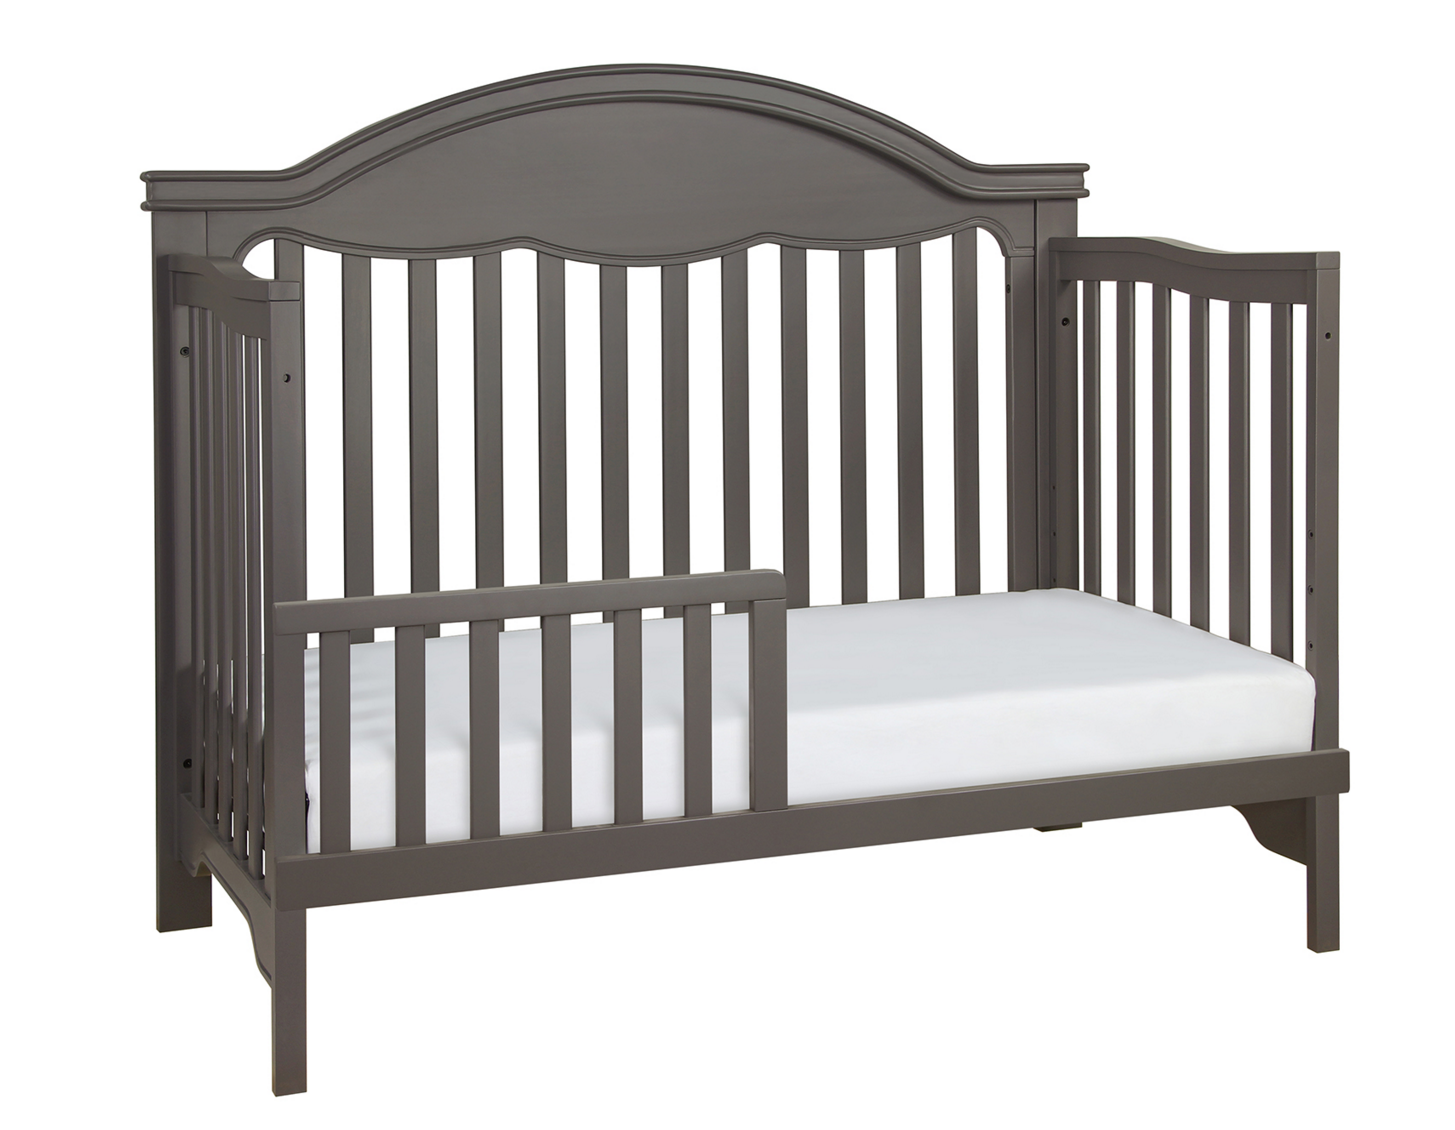 washed classic grey in baby dollar tillen zoom products collection cribs by million